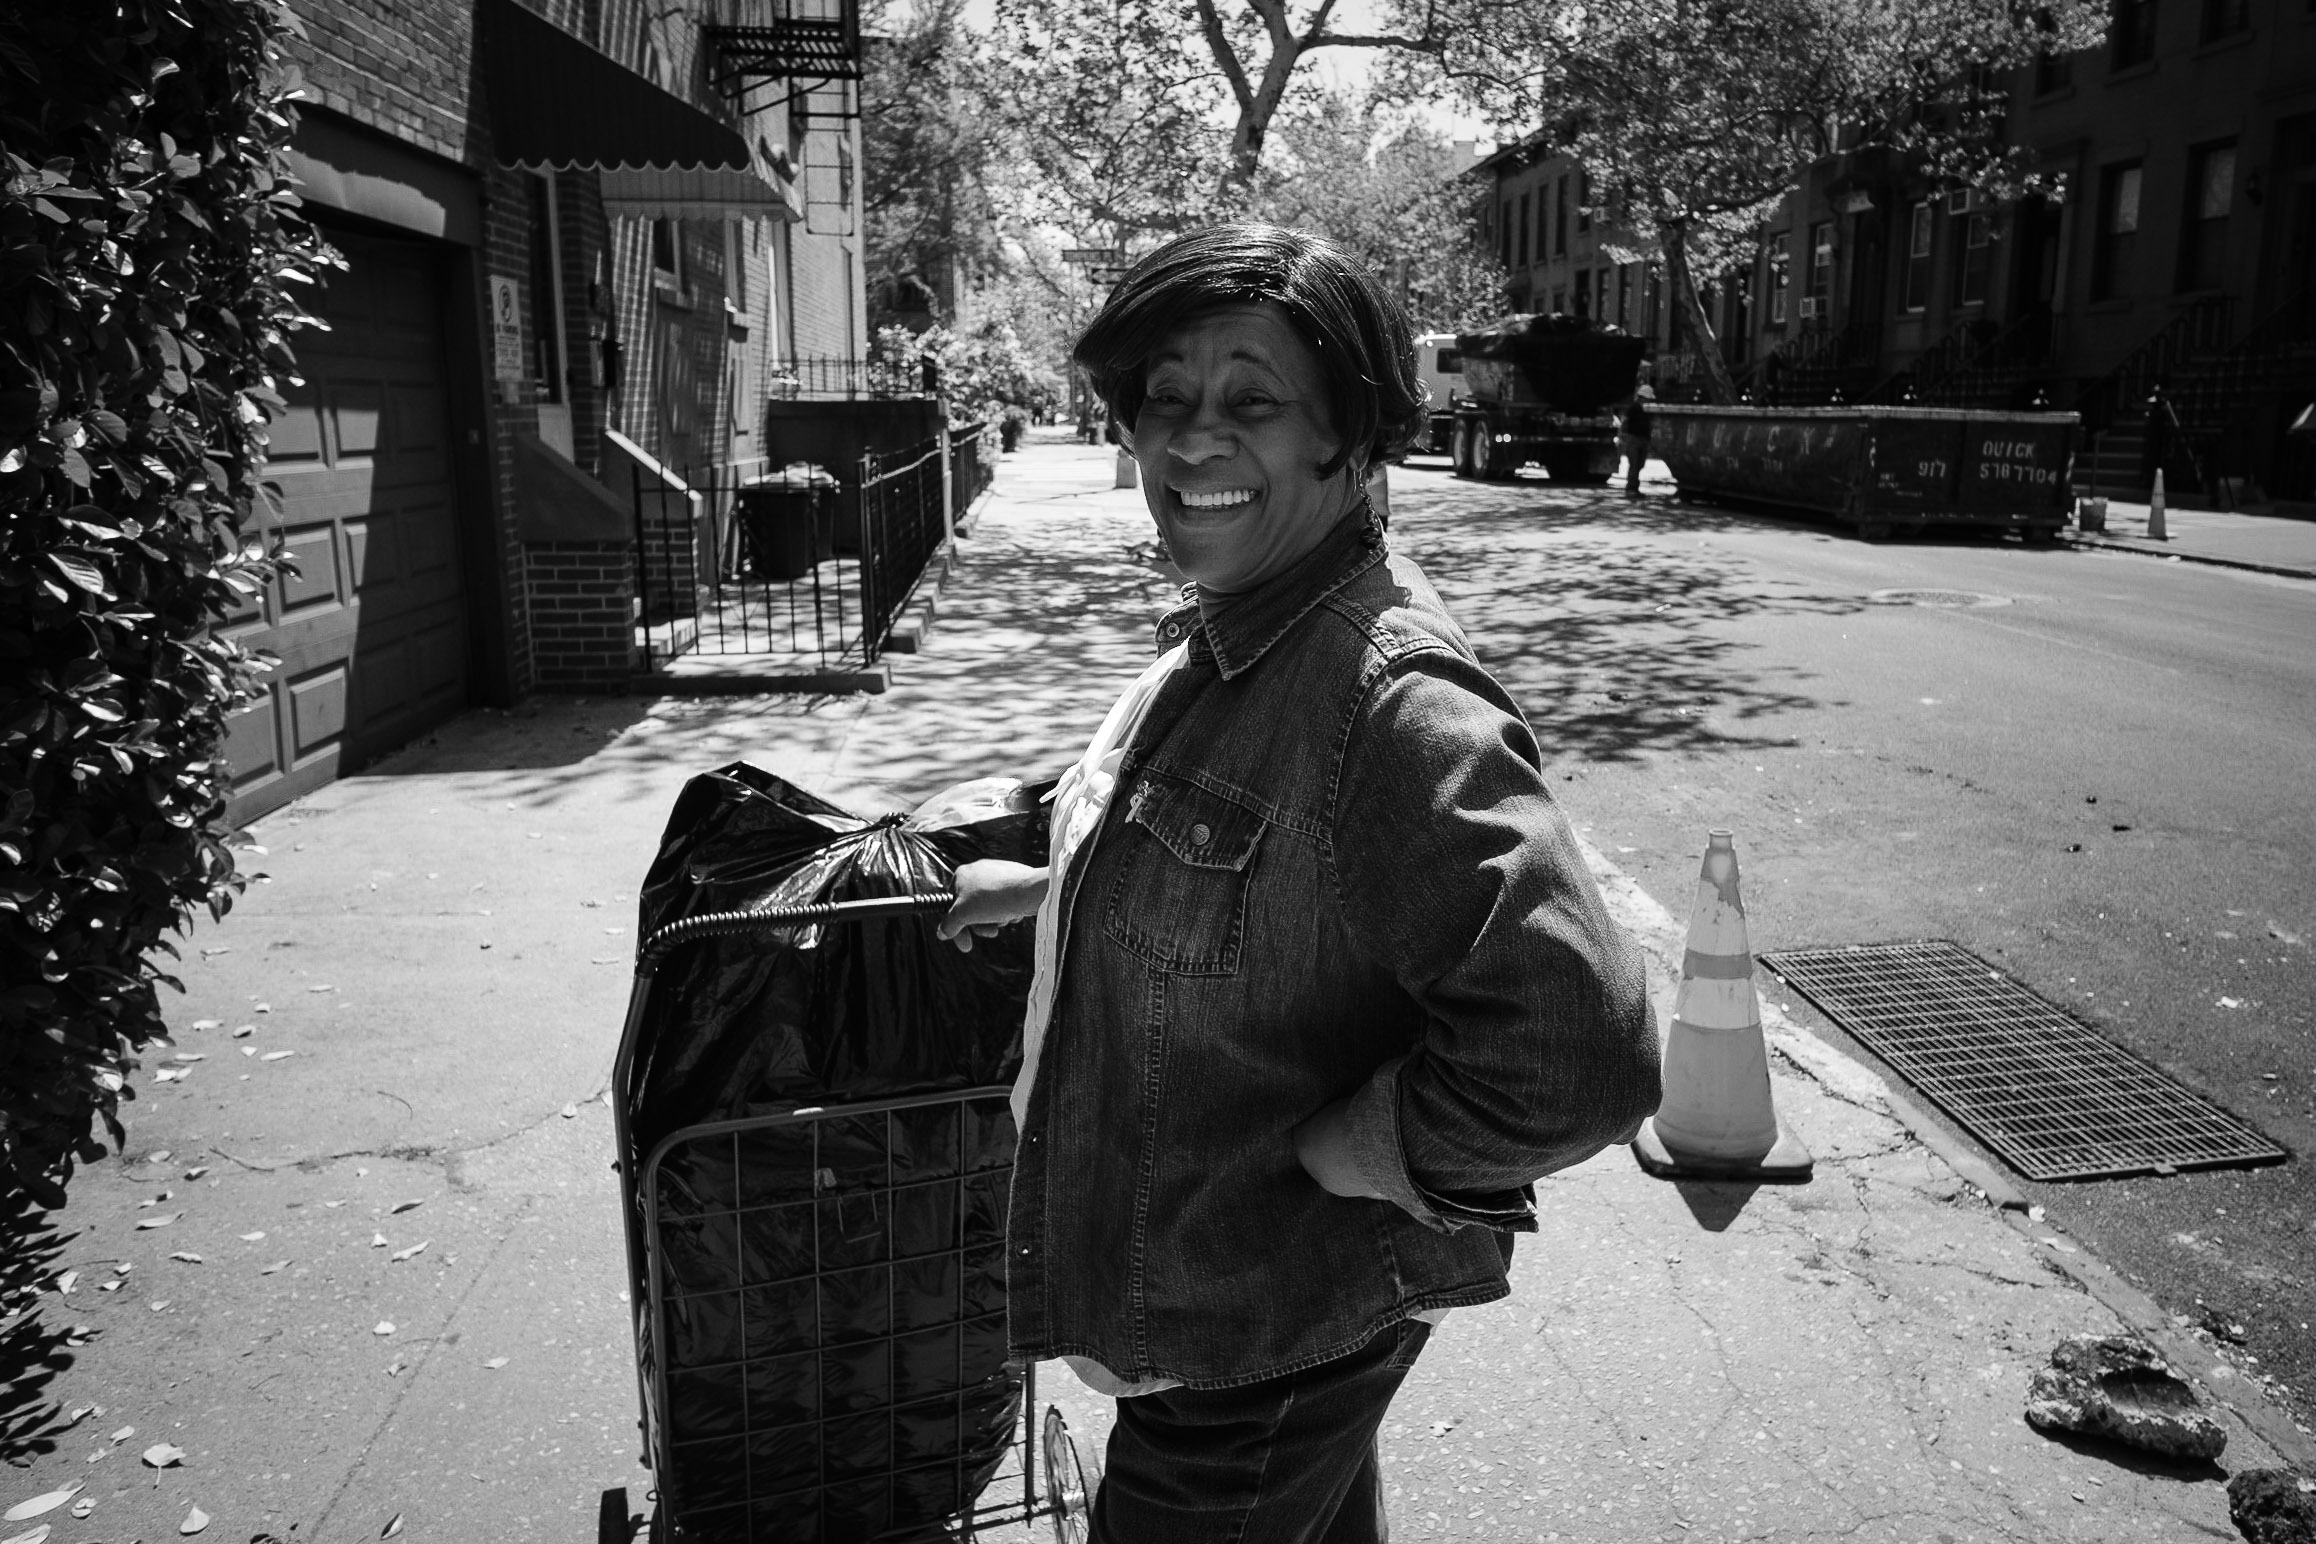 smiling-woman-on-the-street-carroll-gardens-brooklyn-zach-barocas-black-and-white-photography